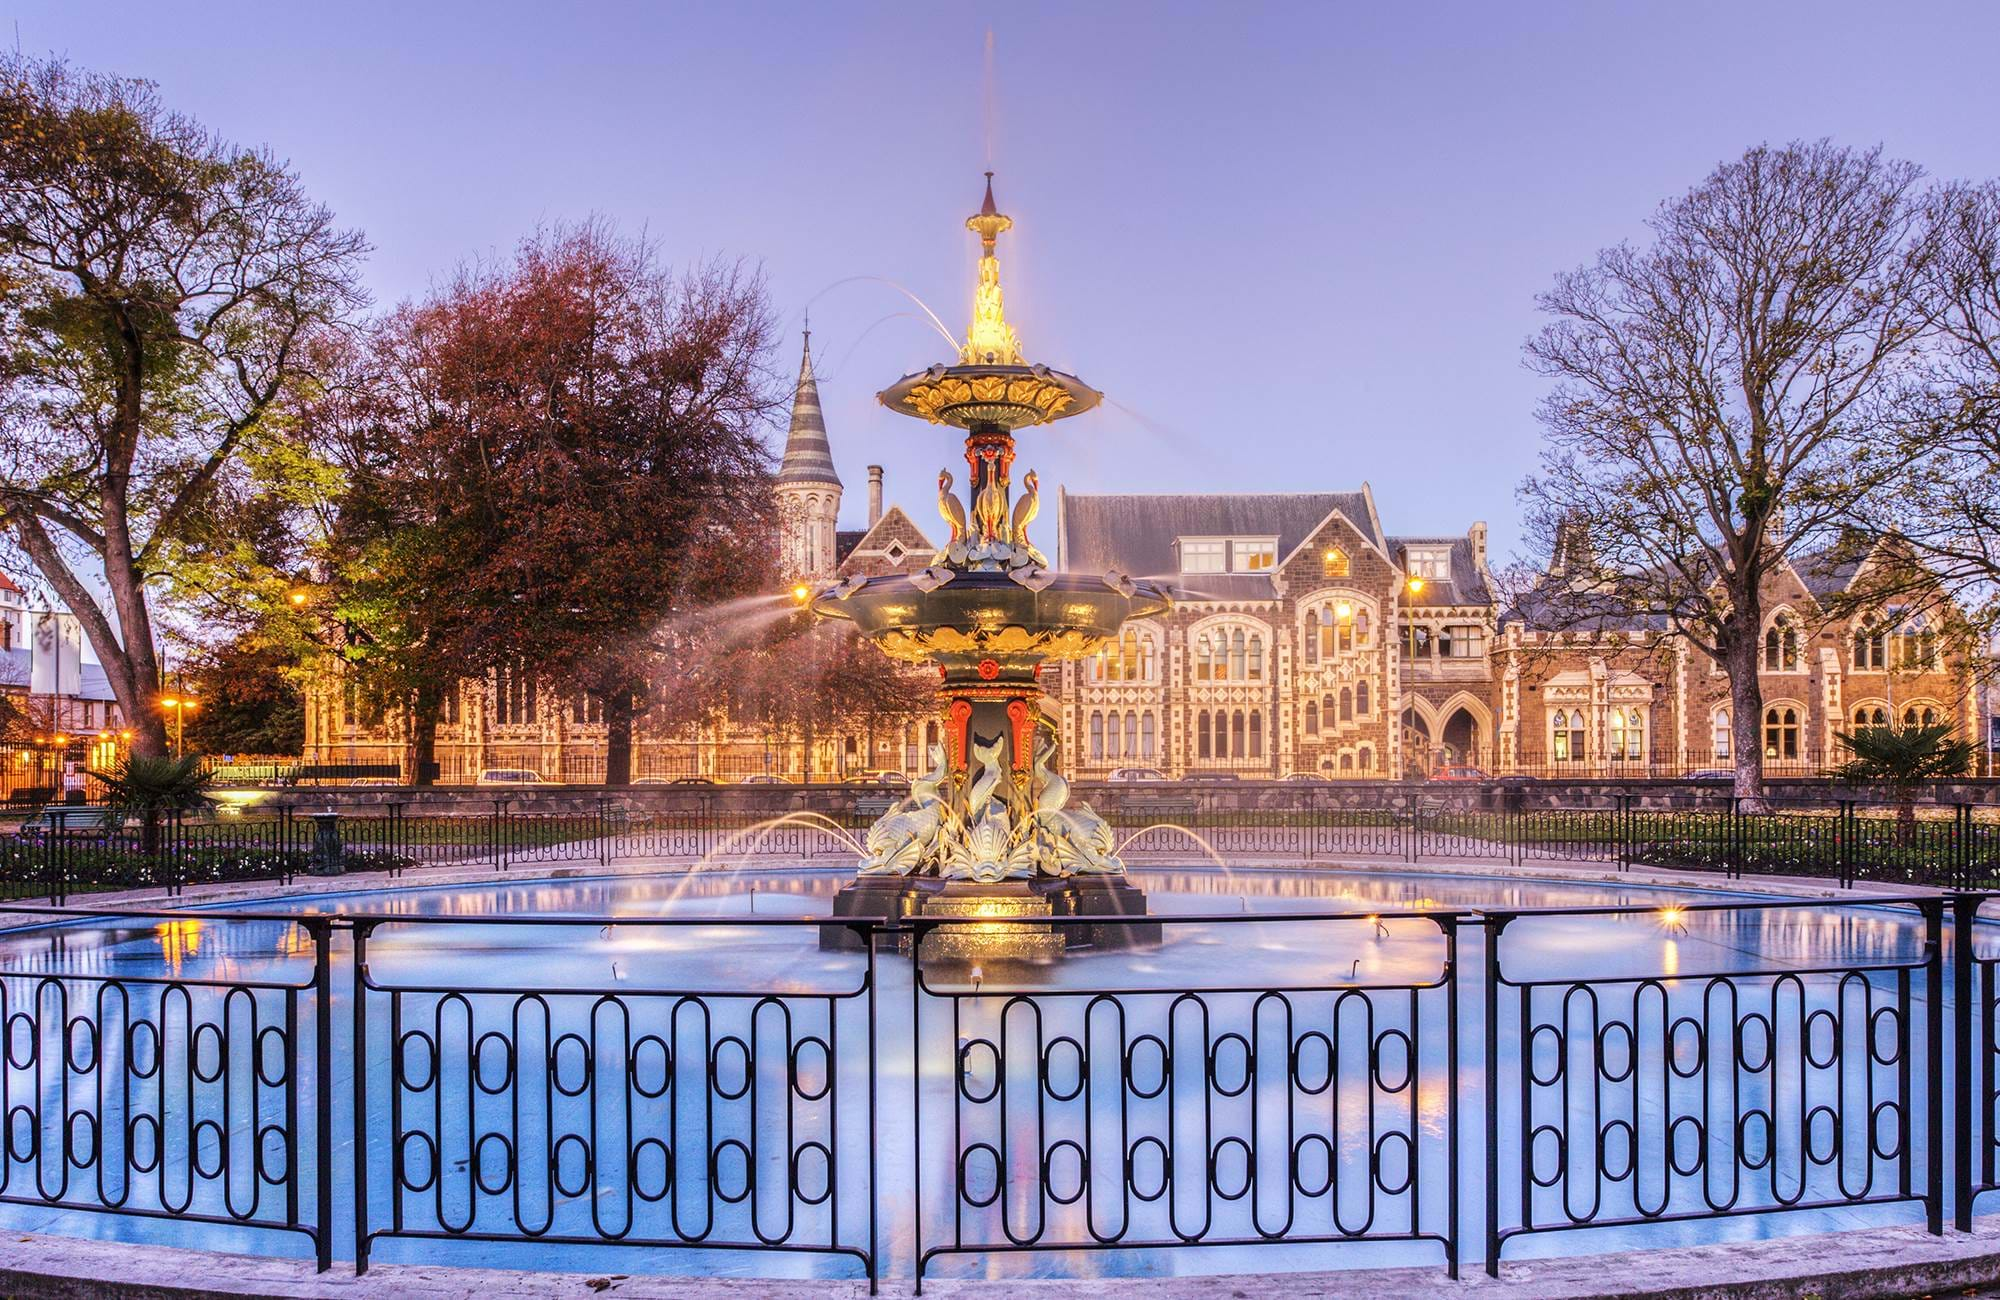 christchurch-new-zealand-fountain-cover